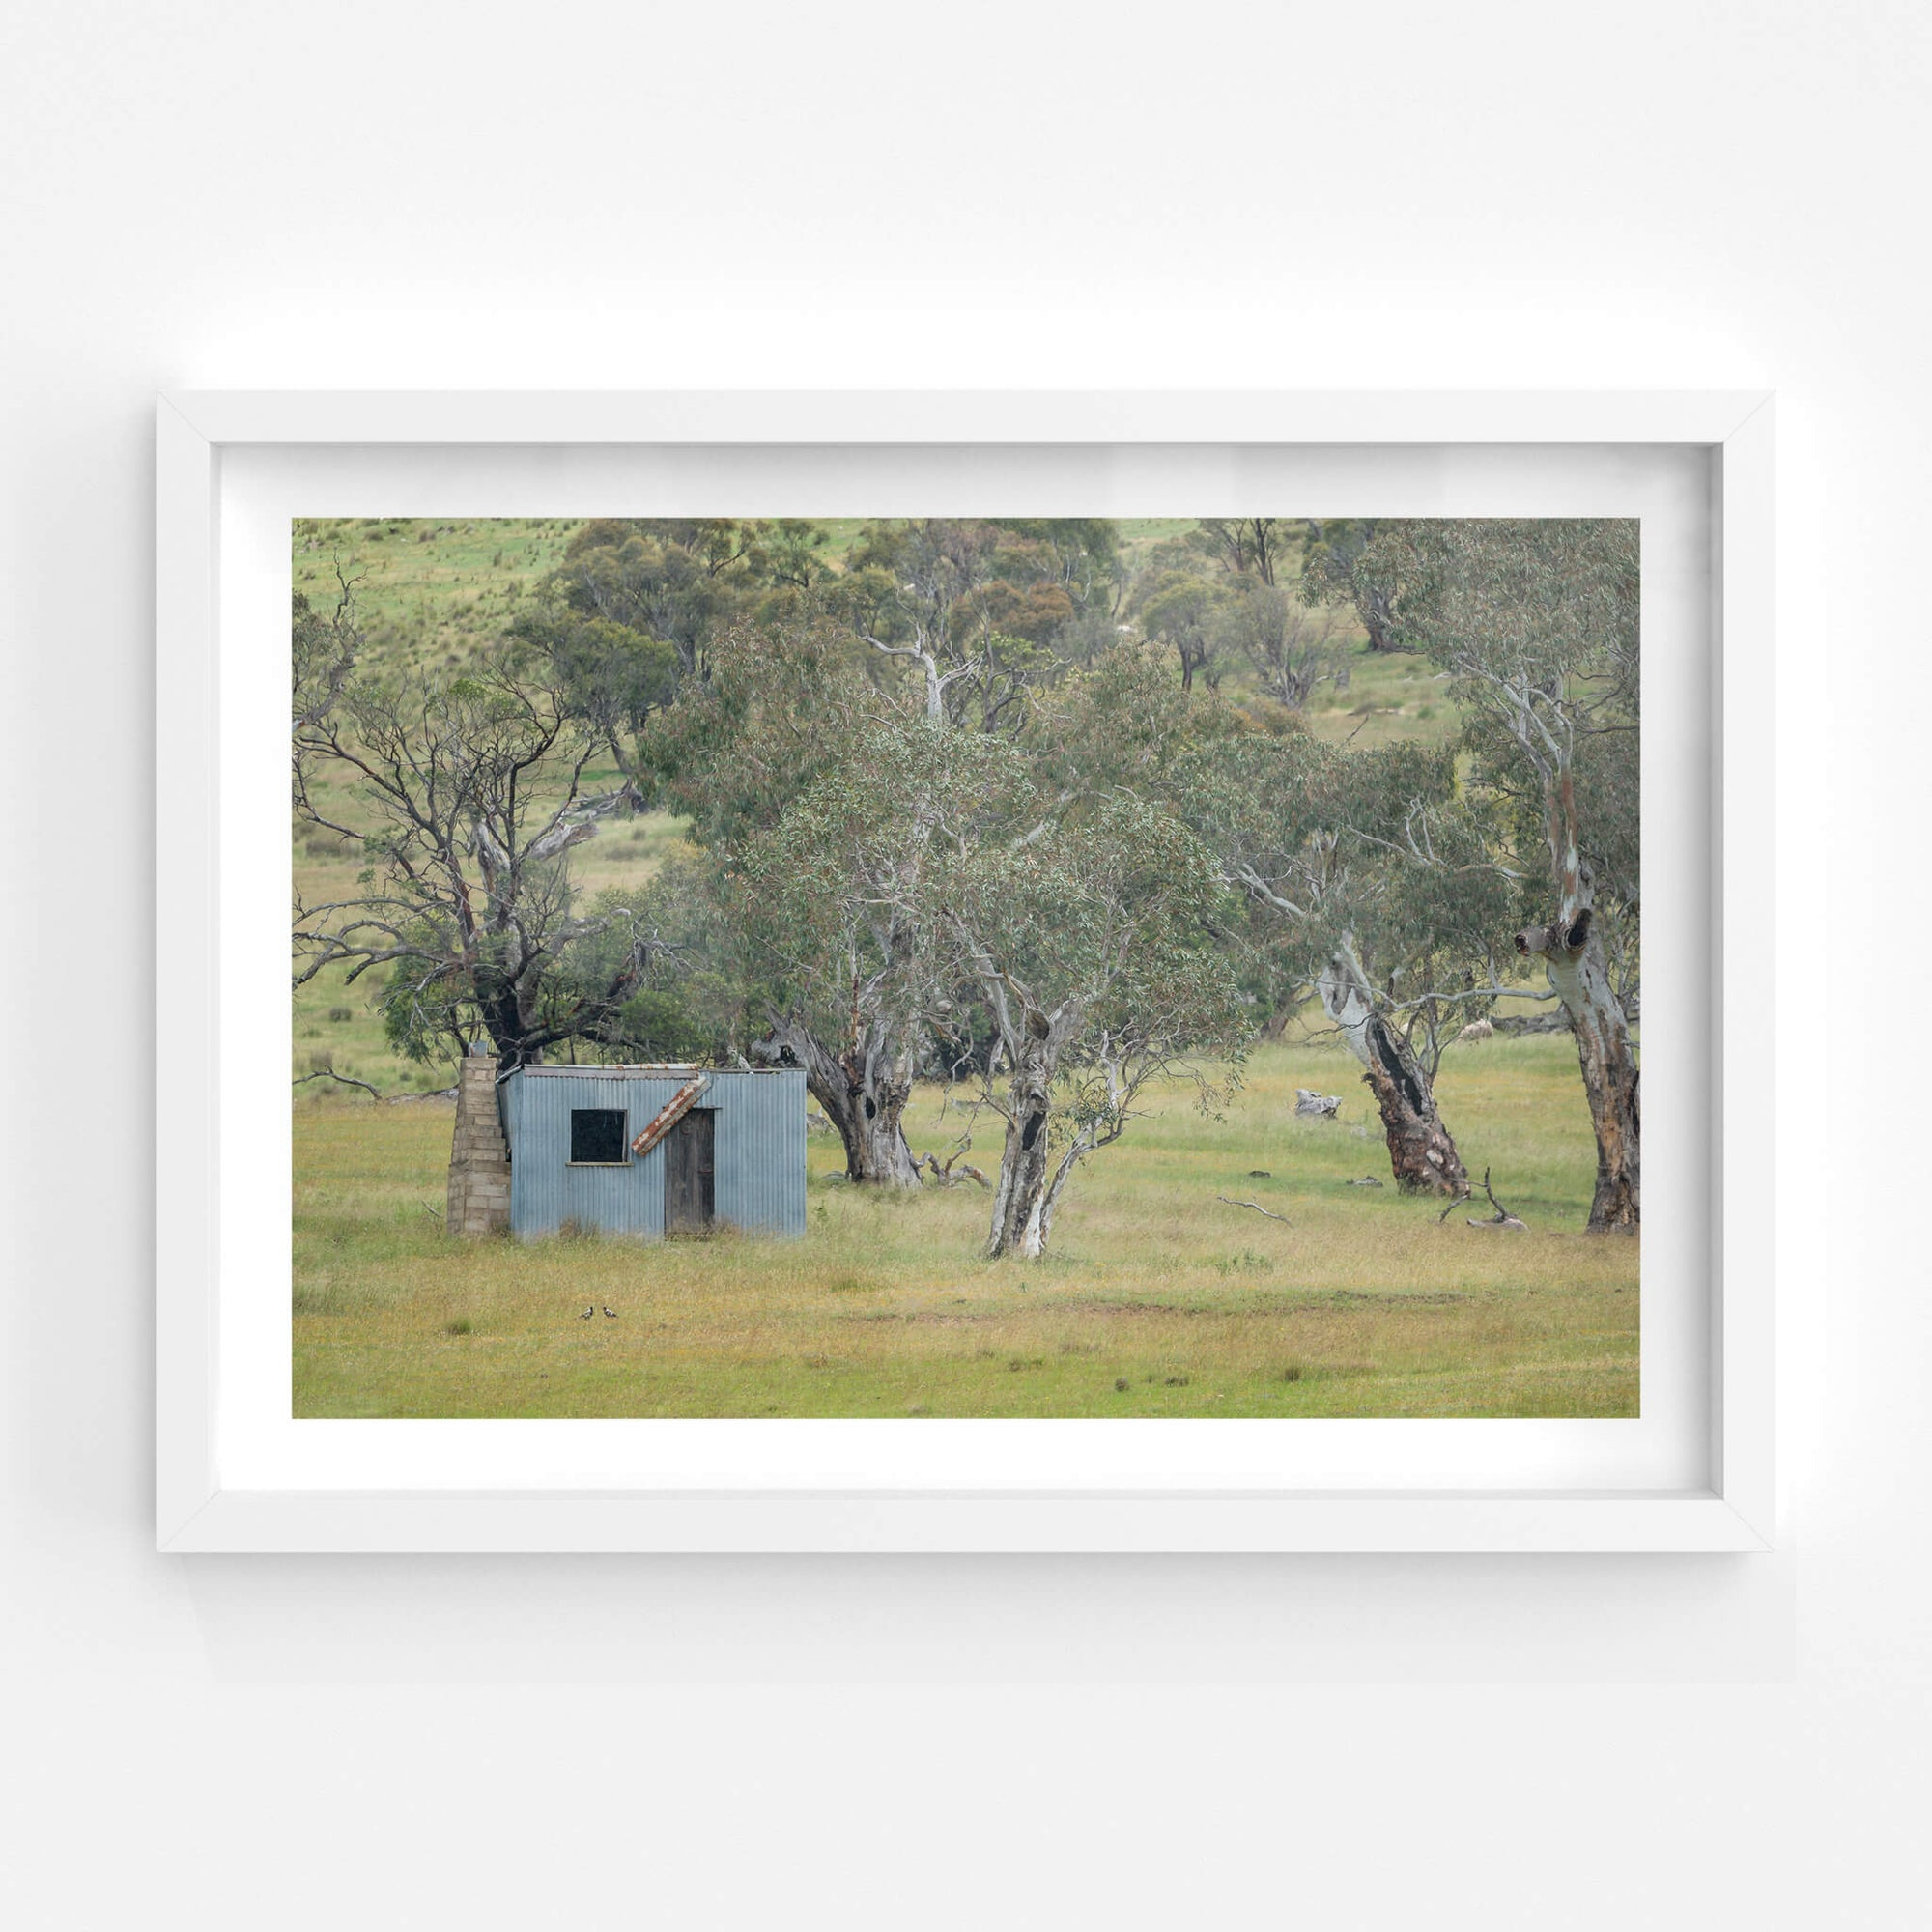 Home Amongst The Gums | A Place to Call Home